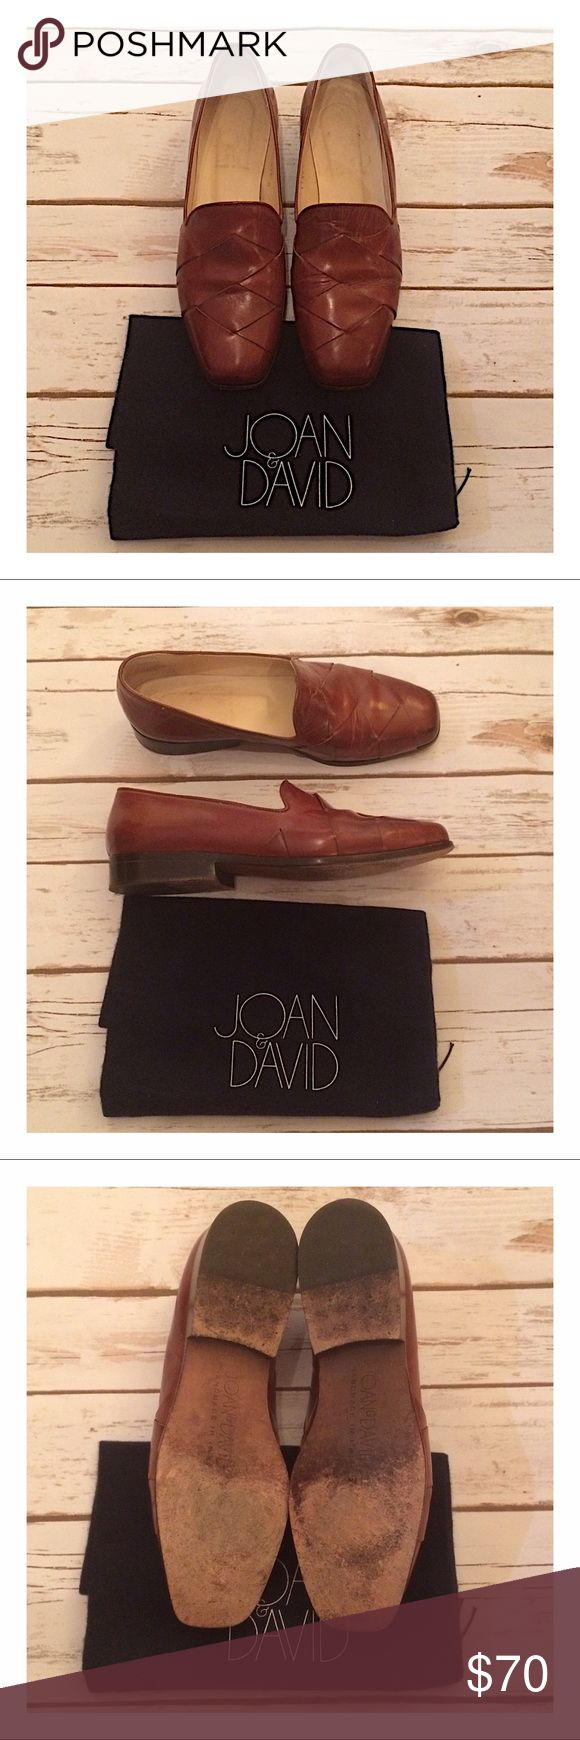 Joan & David luggage calf woven loafers Warm brown leather handmade in Italy. Excellent condition! Joan & David Shoes Flats & Loafers